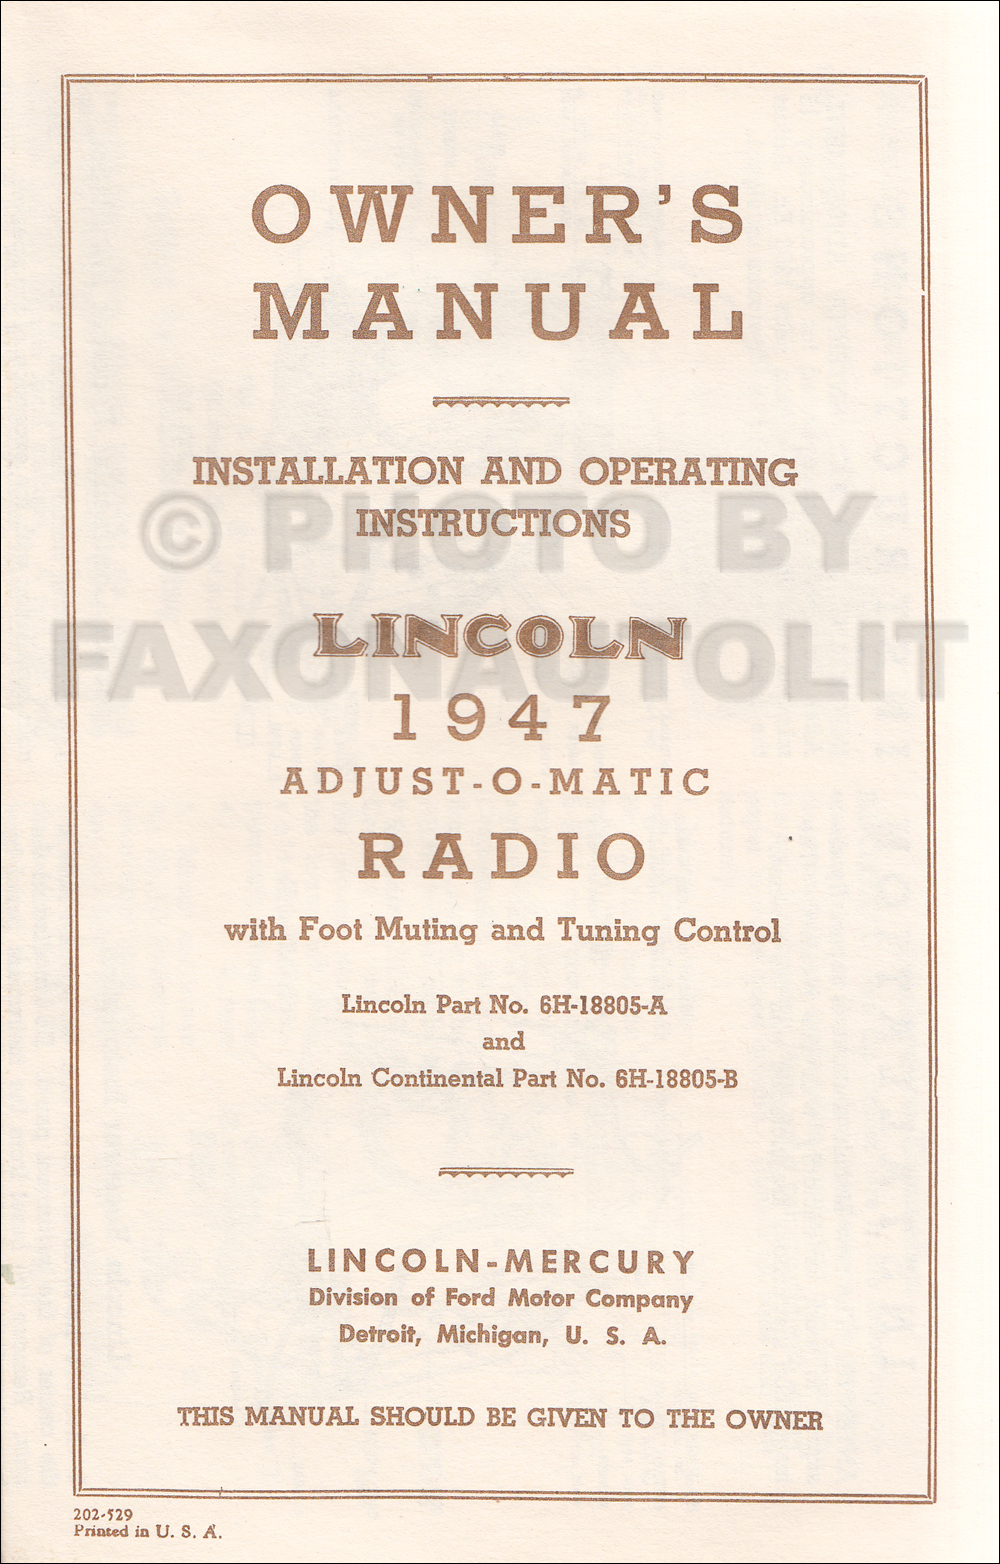 1936 1948 Lincoln V12 Engine Repair Shop Manual Reprint 1946 Wiring 1947 Radio Installation And Owner Operating